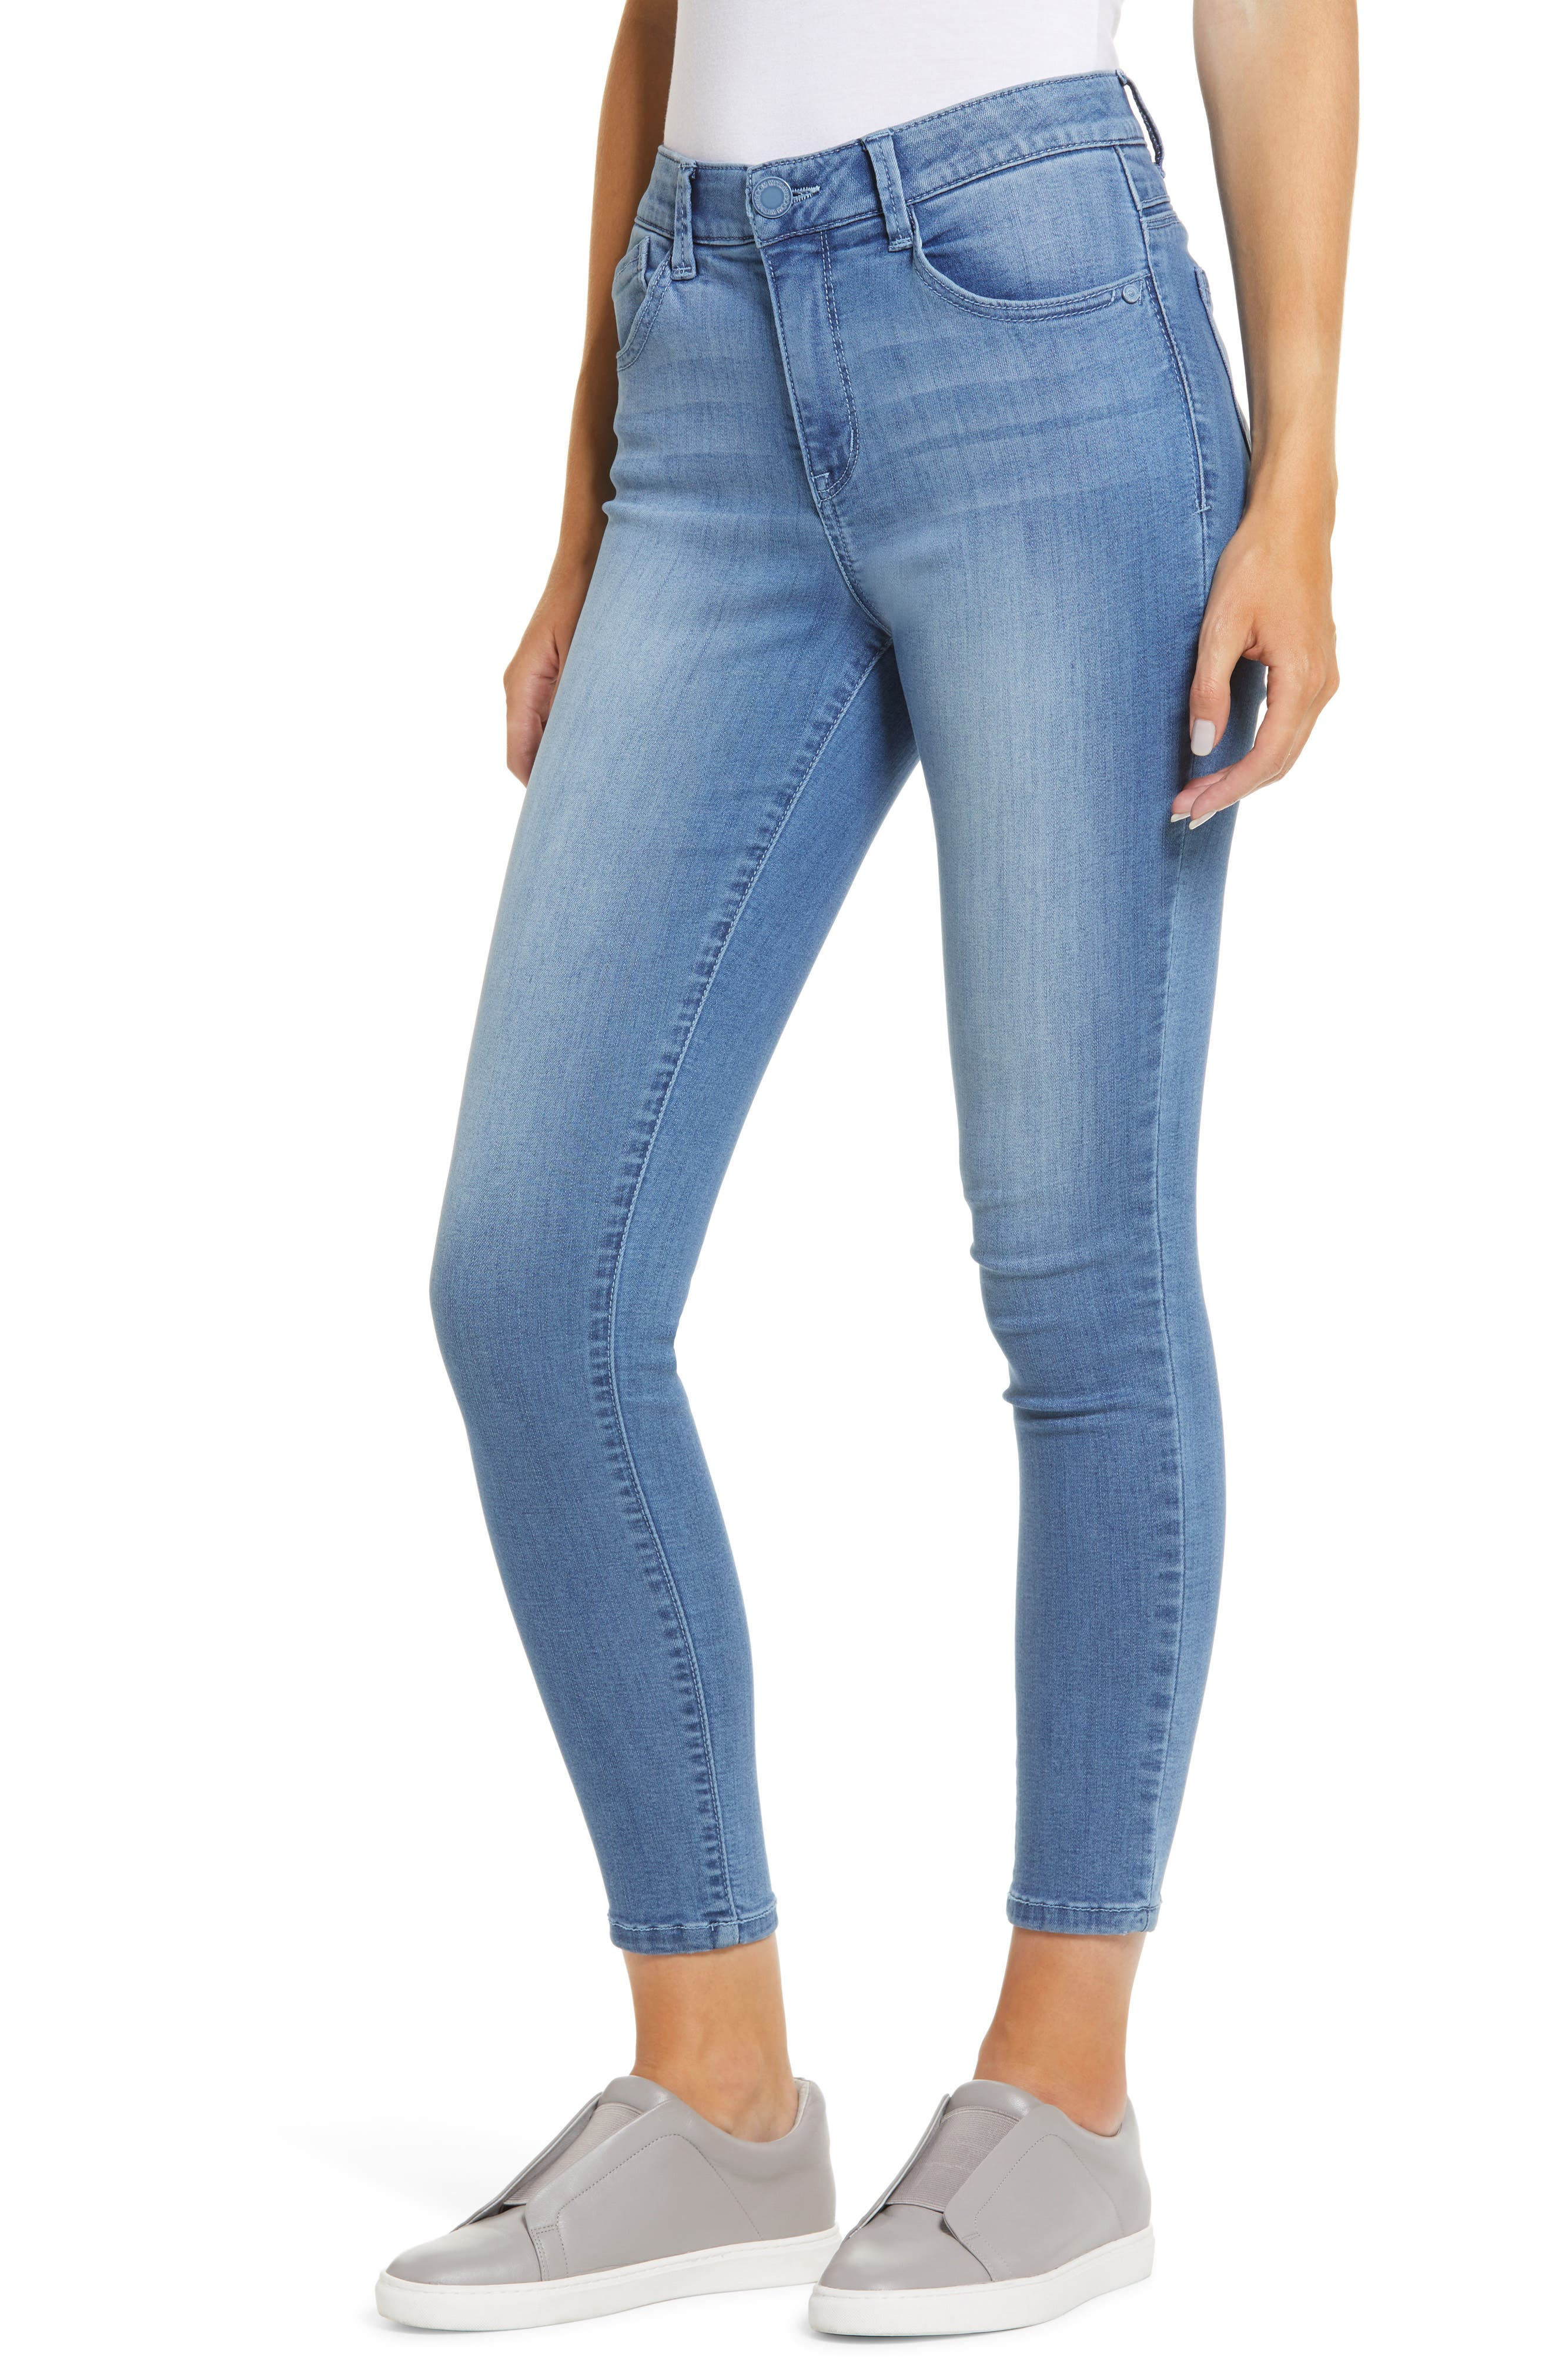 Strategic fading adds everyday appeal to ankle-length skinny jeans designed with Ab-solution power-mesh panels to slim and hold. Style Name: Wit & Wisdom Ab-Solution Luxe Touch High Waist Ankle Skinny Jeans (Nordstrom Exclusive). Style Number: 6058624. Available in stores.